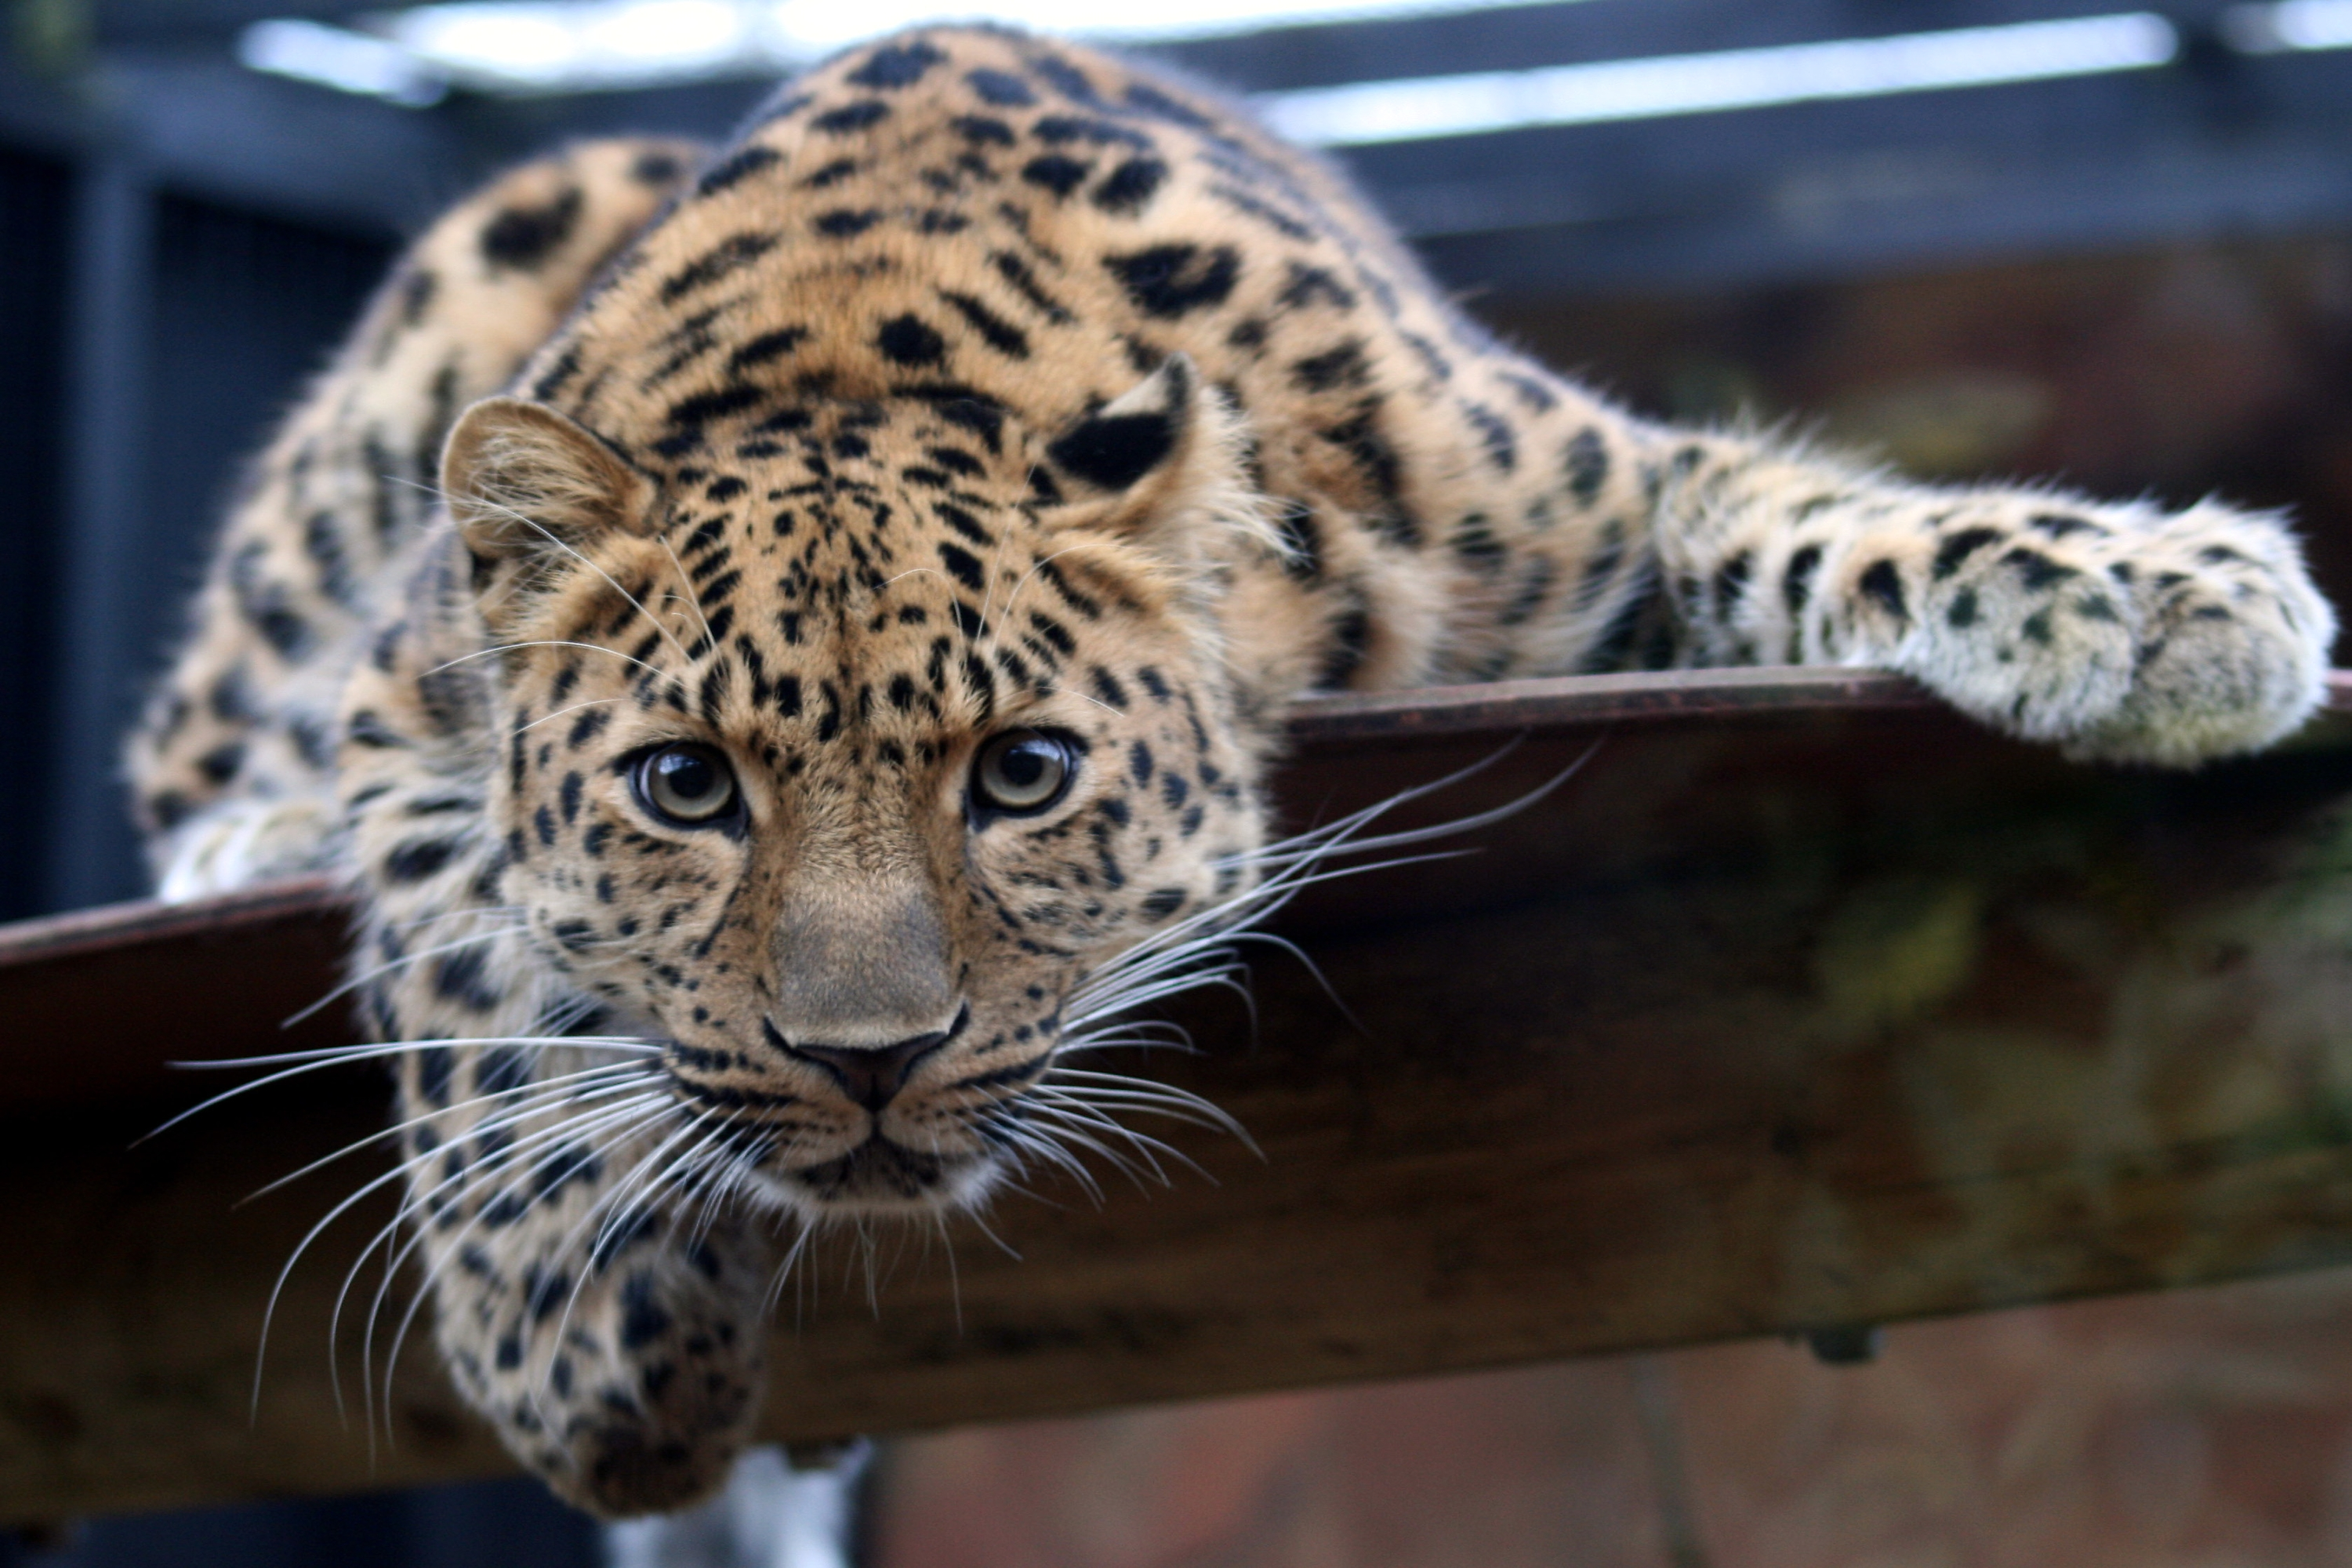 Leopard_in_the_Colchester_Zoo.jpg